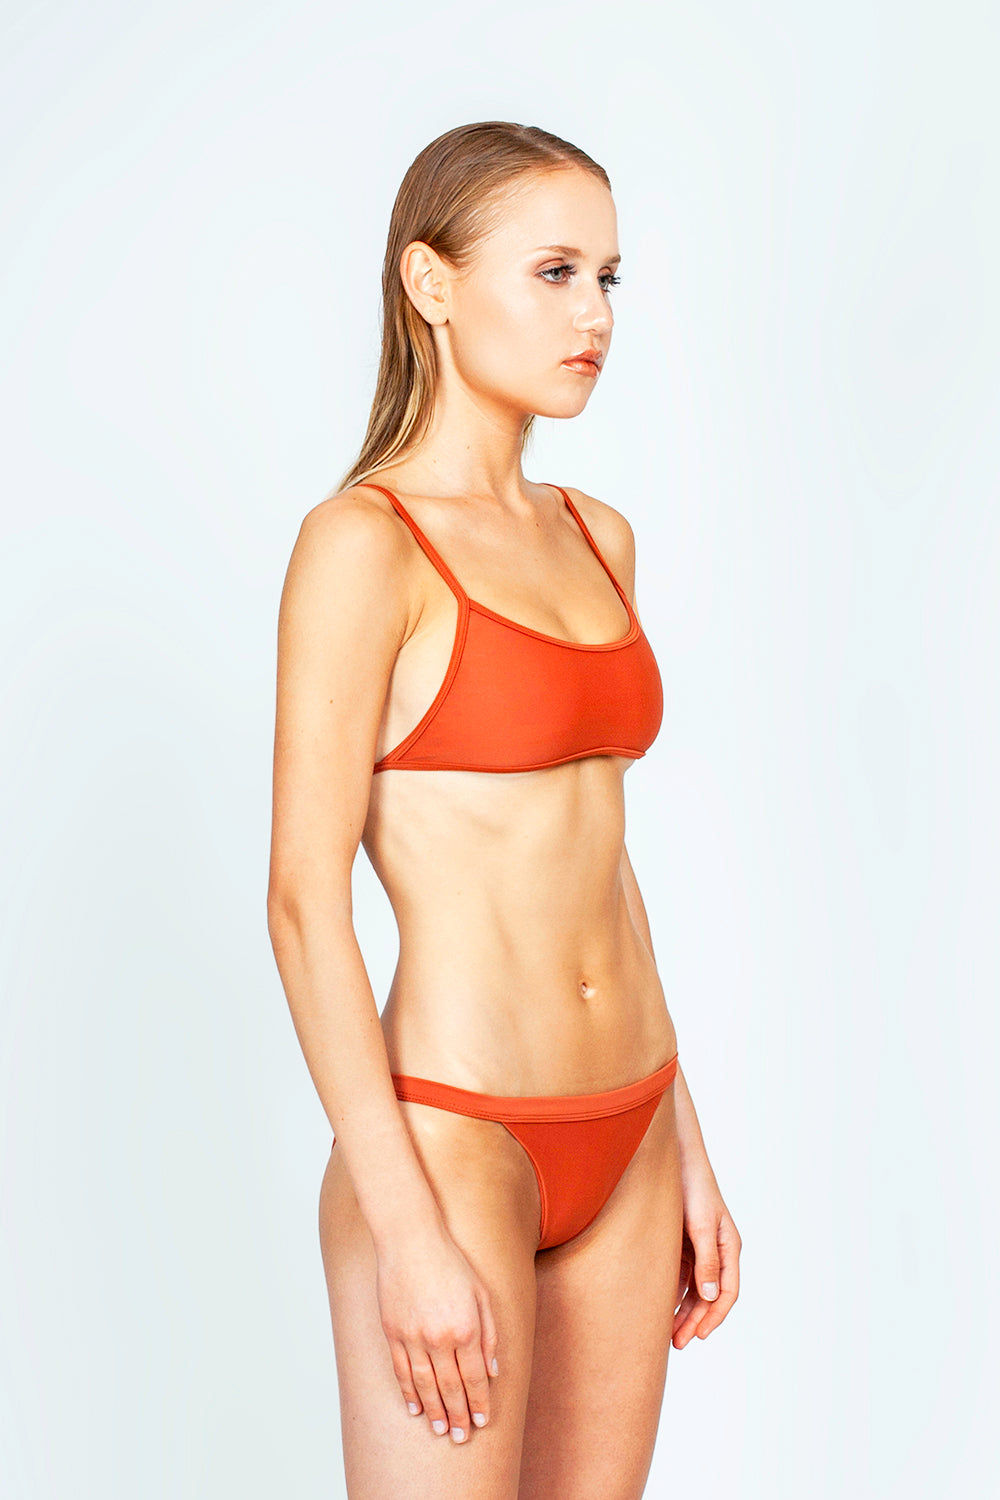 THE ONES WHO Ava Sporty Bikini Top - Copper Orange Bikini Top | Copper Orange| The Ones Who Ava Sporty Bikini Top - Copper Orange Sporty and minimal top Adjustable shoulder straps Self-tie back Fully lined with no cups Made in LA  Fabric: 80% Nylon 20% Elastane Side View